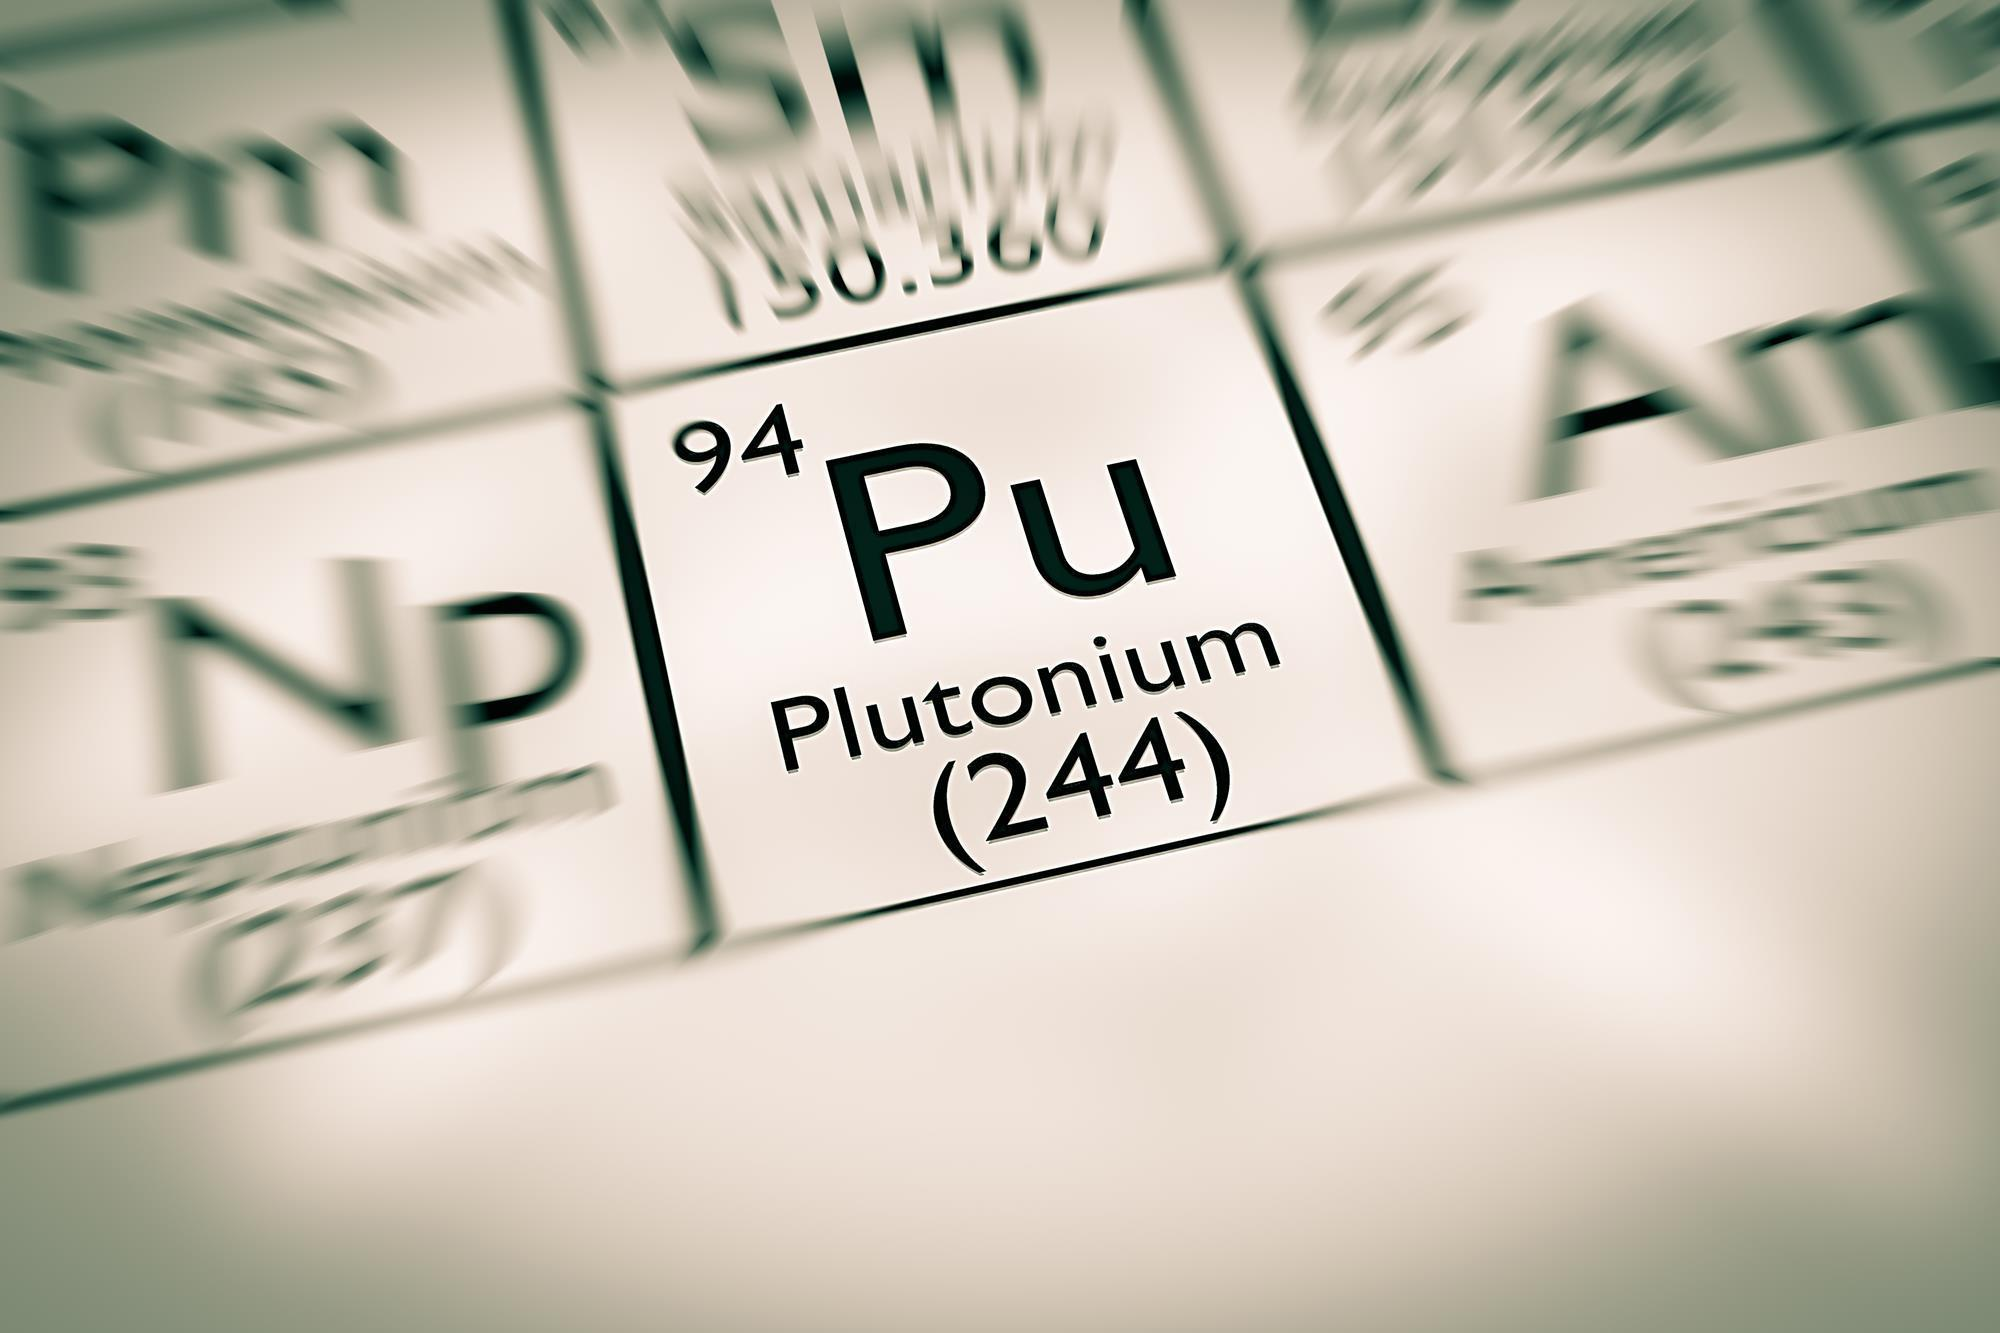 Plutonium gets another oxidation state added to its arsenal plutonium gets another oxidation state added to its arsenal research chemistry world biocorpaavc Image collections